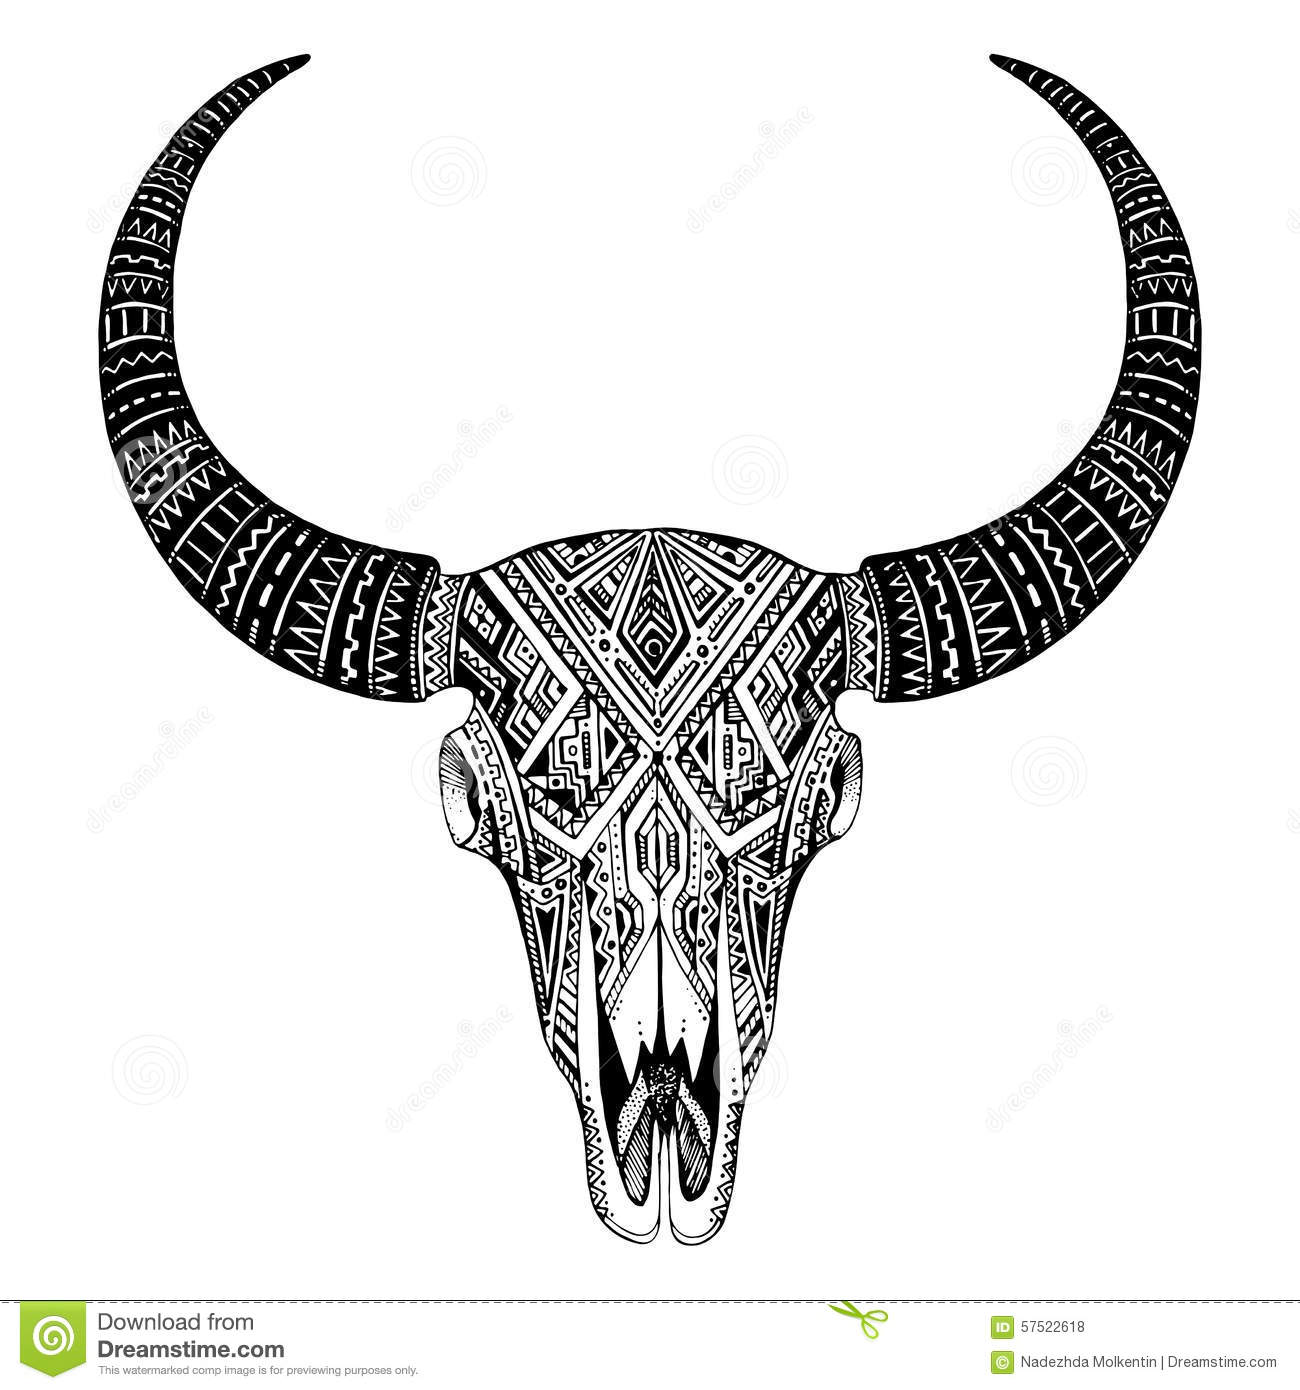 Drawn 20tractor 20simple also How To Draw Sharp Teeth And Have Them Make Sense in addition A Guide To Drawing Scary Monsters as well Images Libres De Droits T C3 AAte De Cerfs  muns De Vecteur D Isolement Image36684659 moreover Stock Illustration Deer Skull Vector Black White Sket Illustrations Drawing Cow Horns Image63208798. on drawn deer